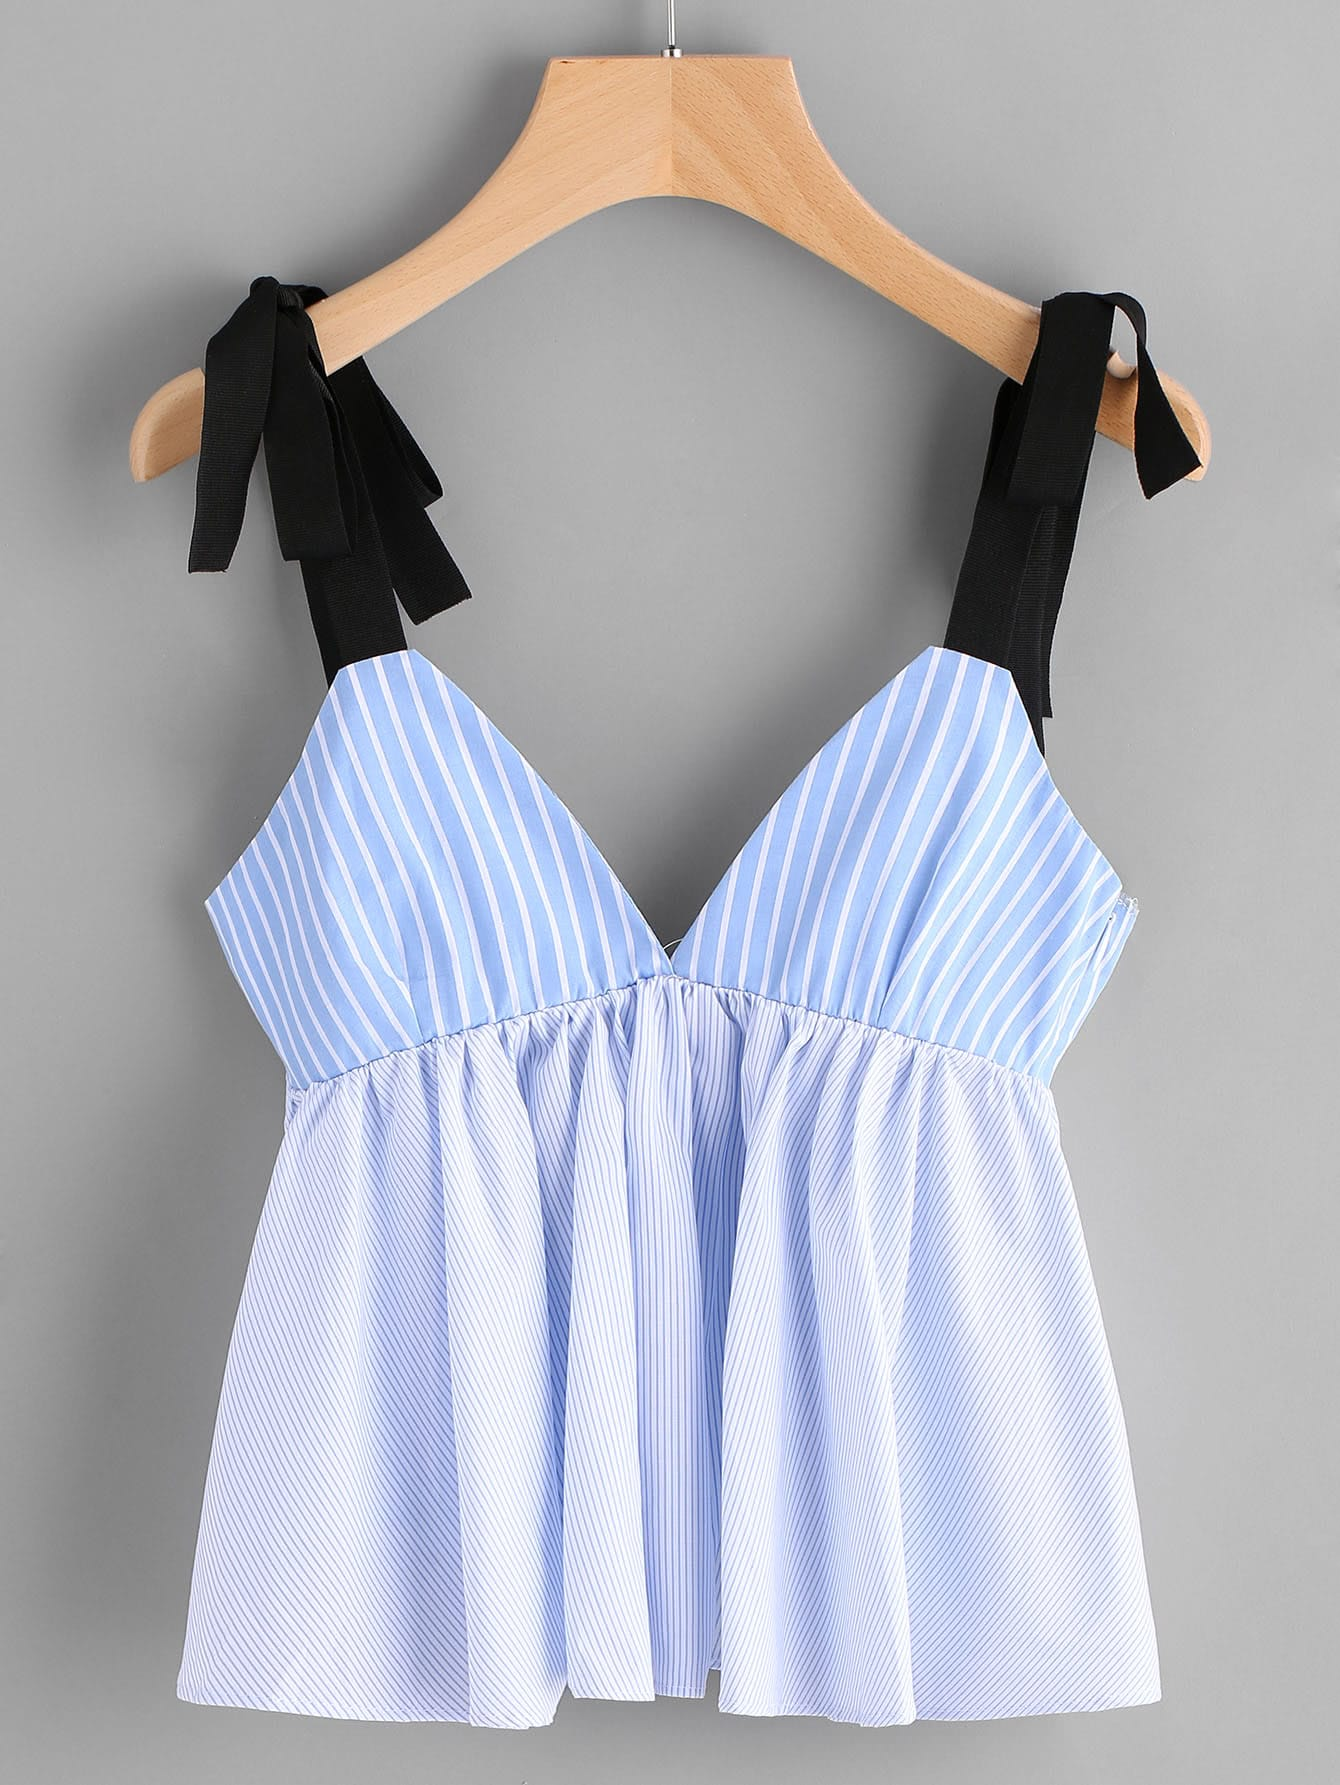 Vertical Striped Bow Tie Detail Peplum Cami Top mesh shoulder lace applique bow detail striped top